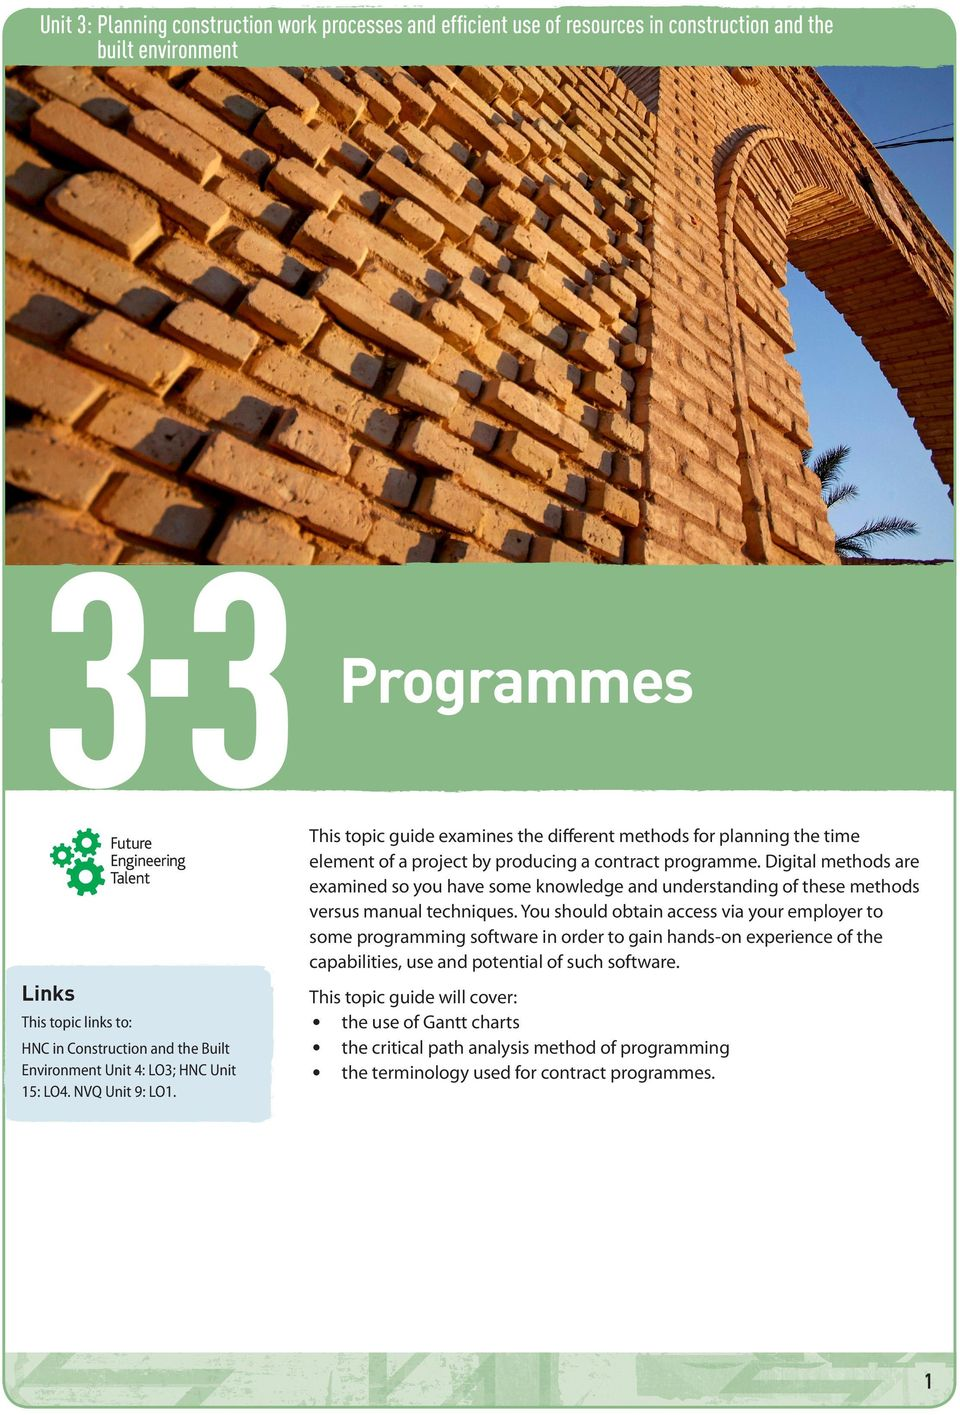 Programmes This topic guide examines the different methods for planning the time element of a project by producing a contract programme.